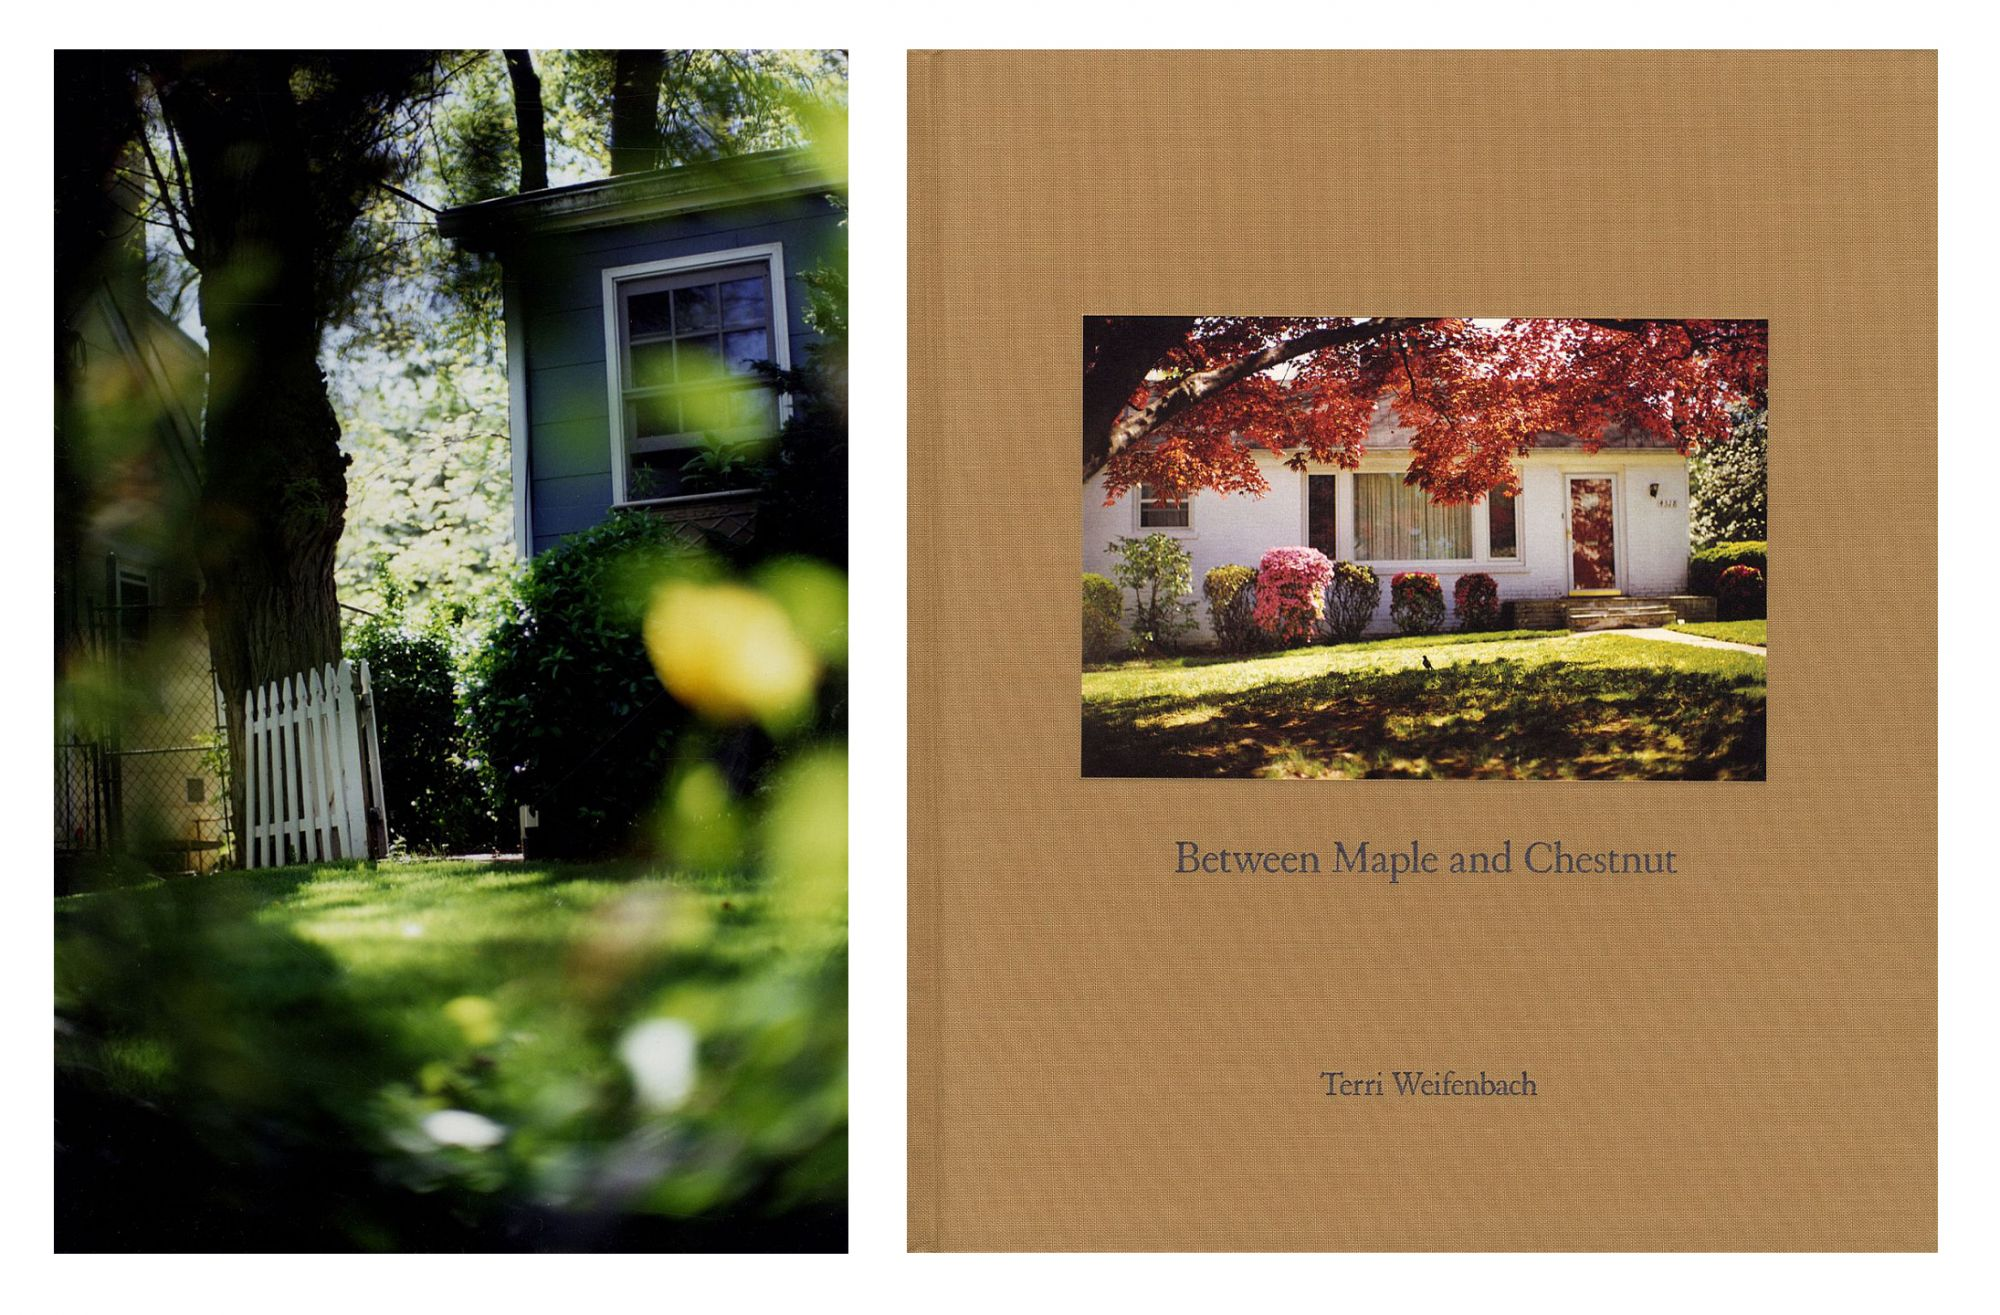 Terri Weifenbach: Between Maple and Chestnut, Special Limited Edition (with Type-C Print)